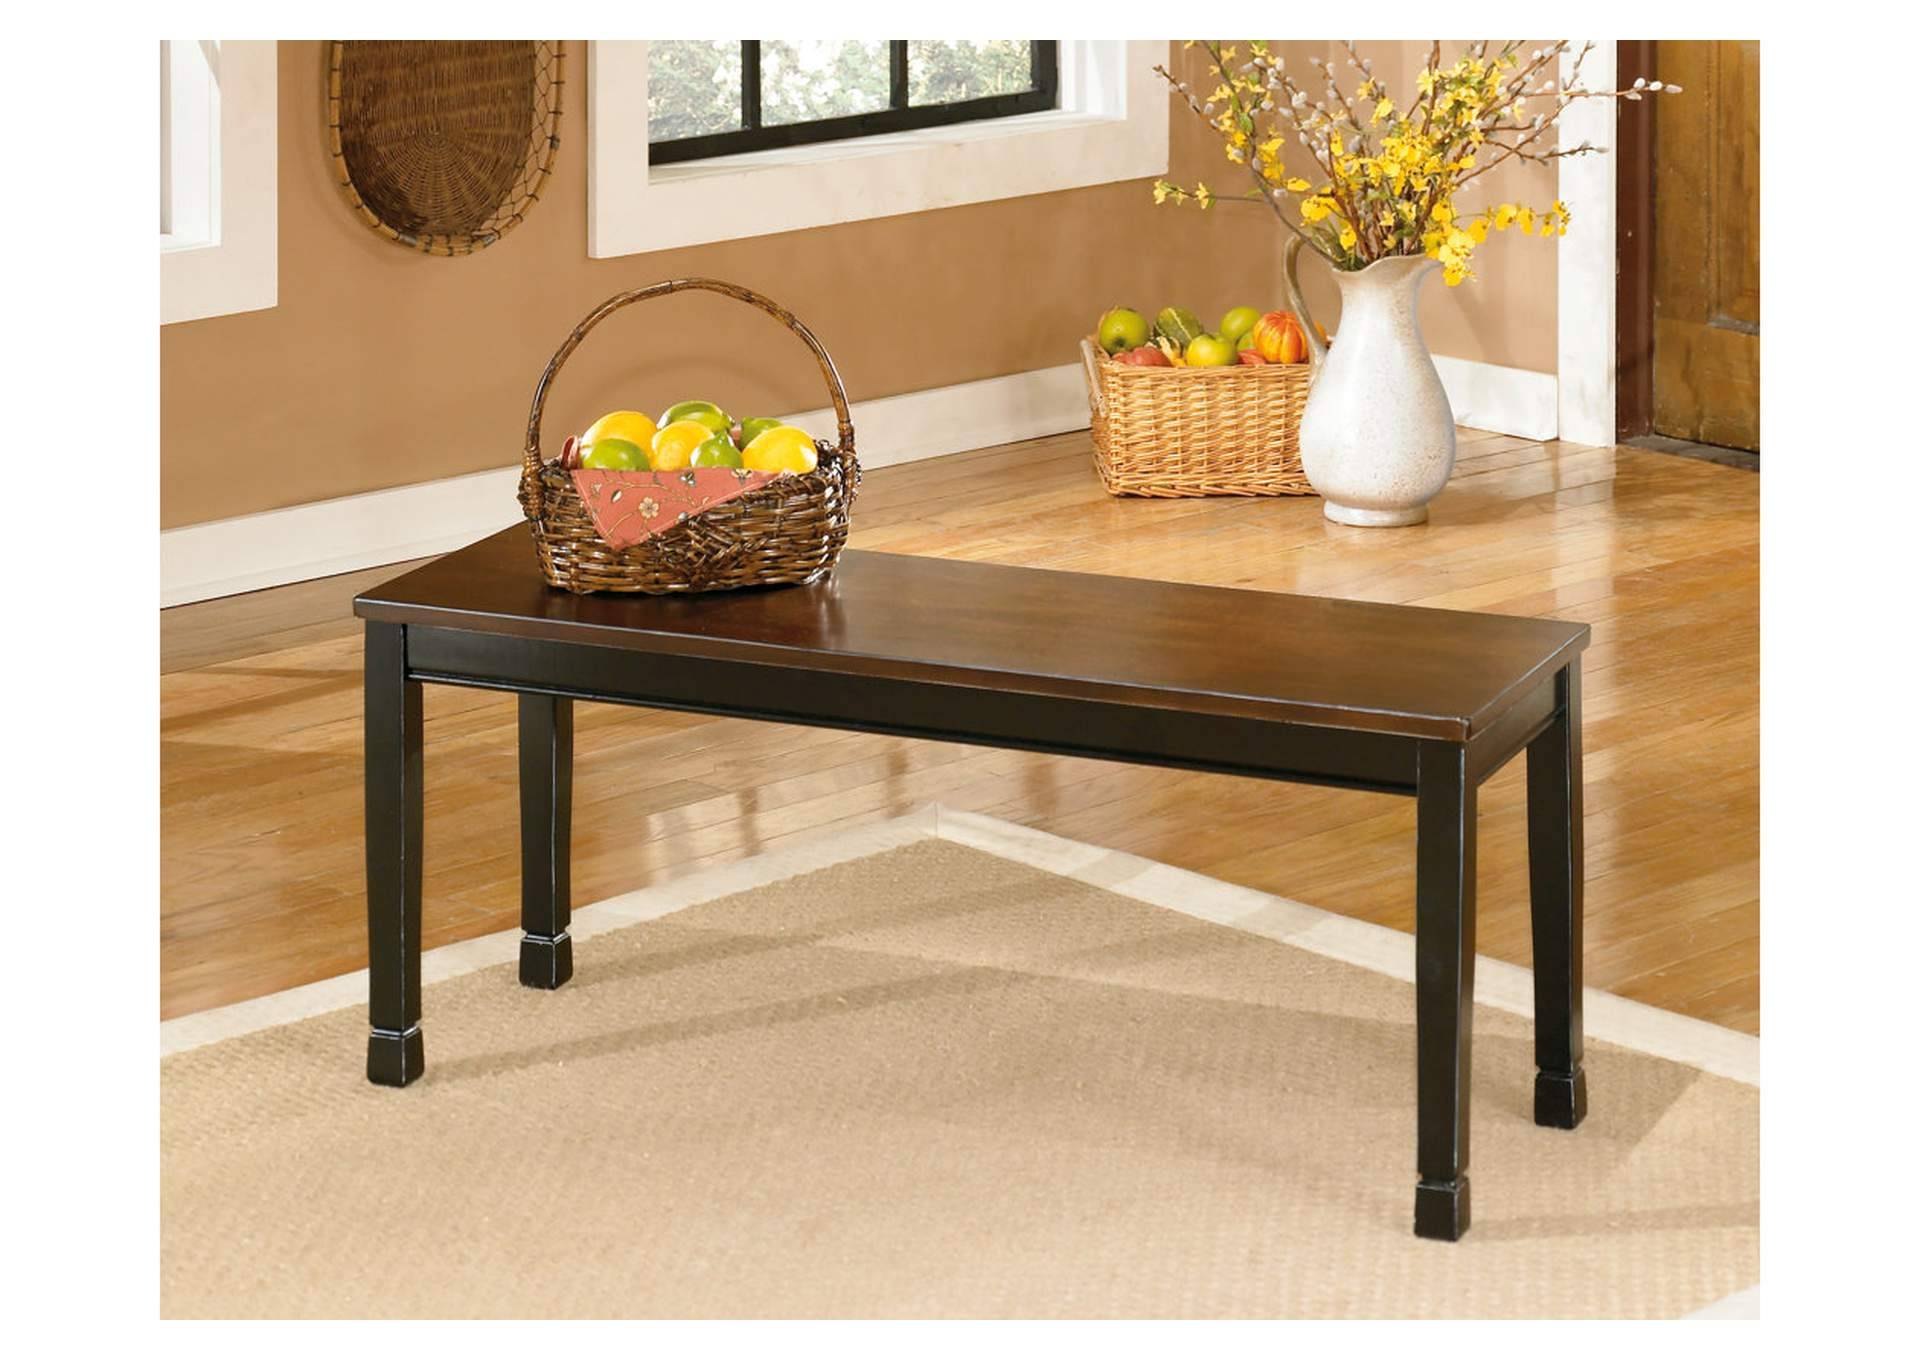 Owingsville Large Dining Bench,ABF Signature Design by Ashley